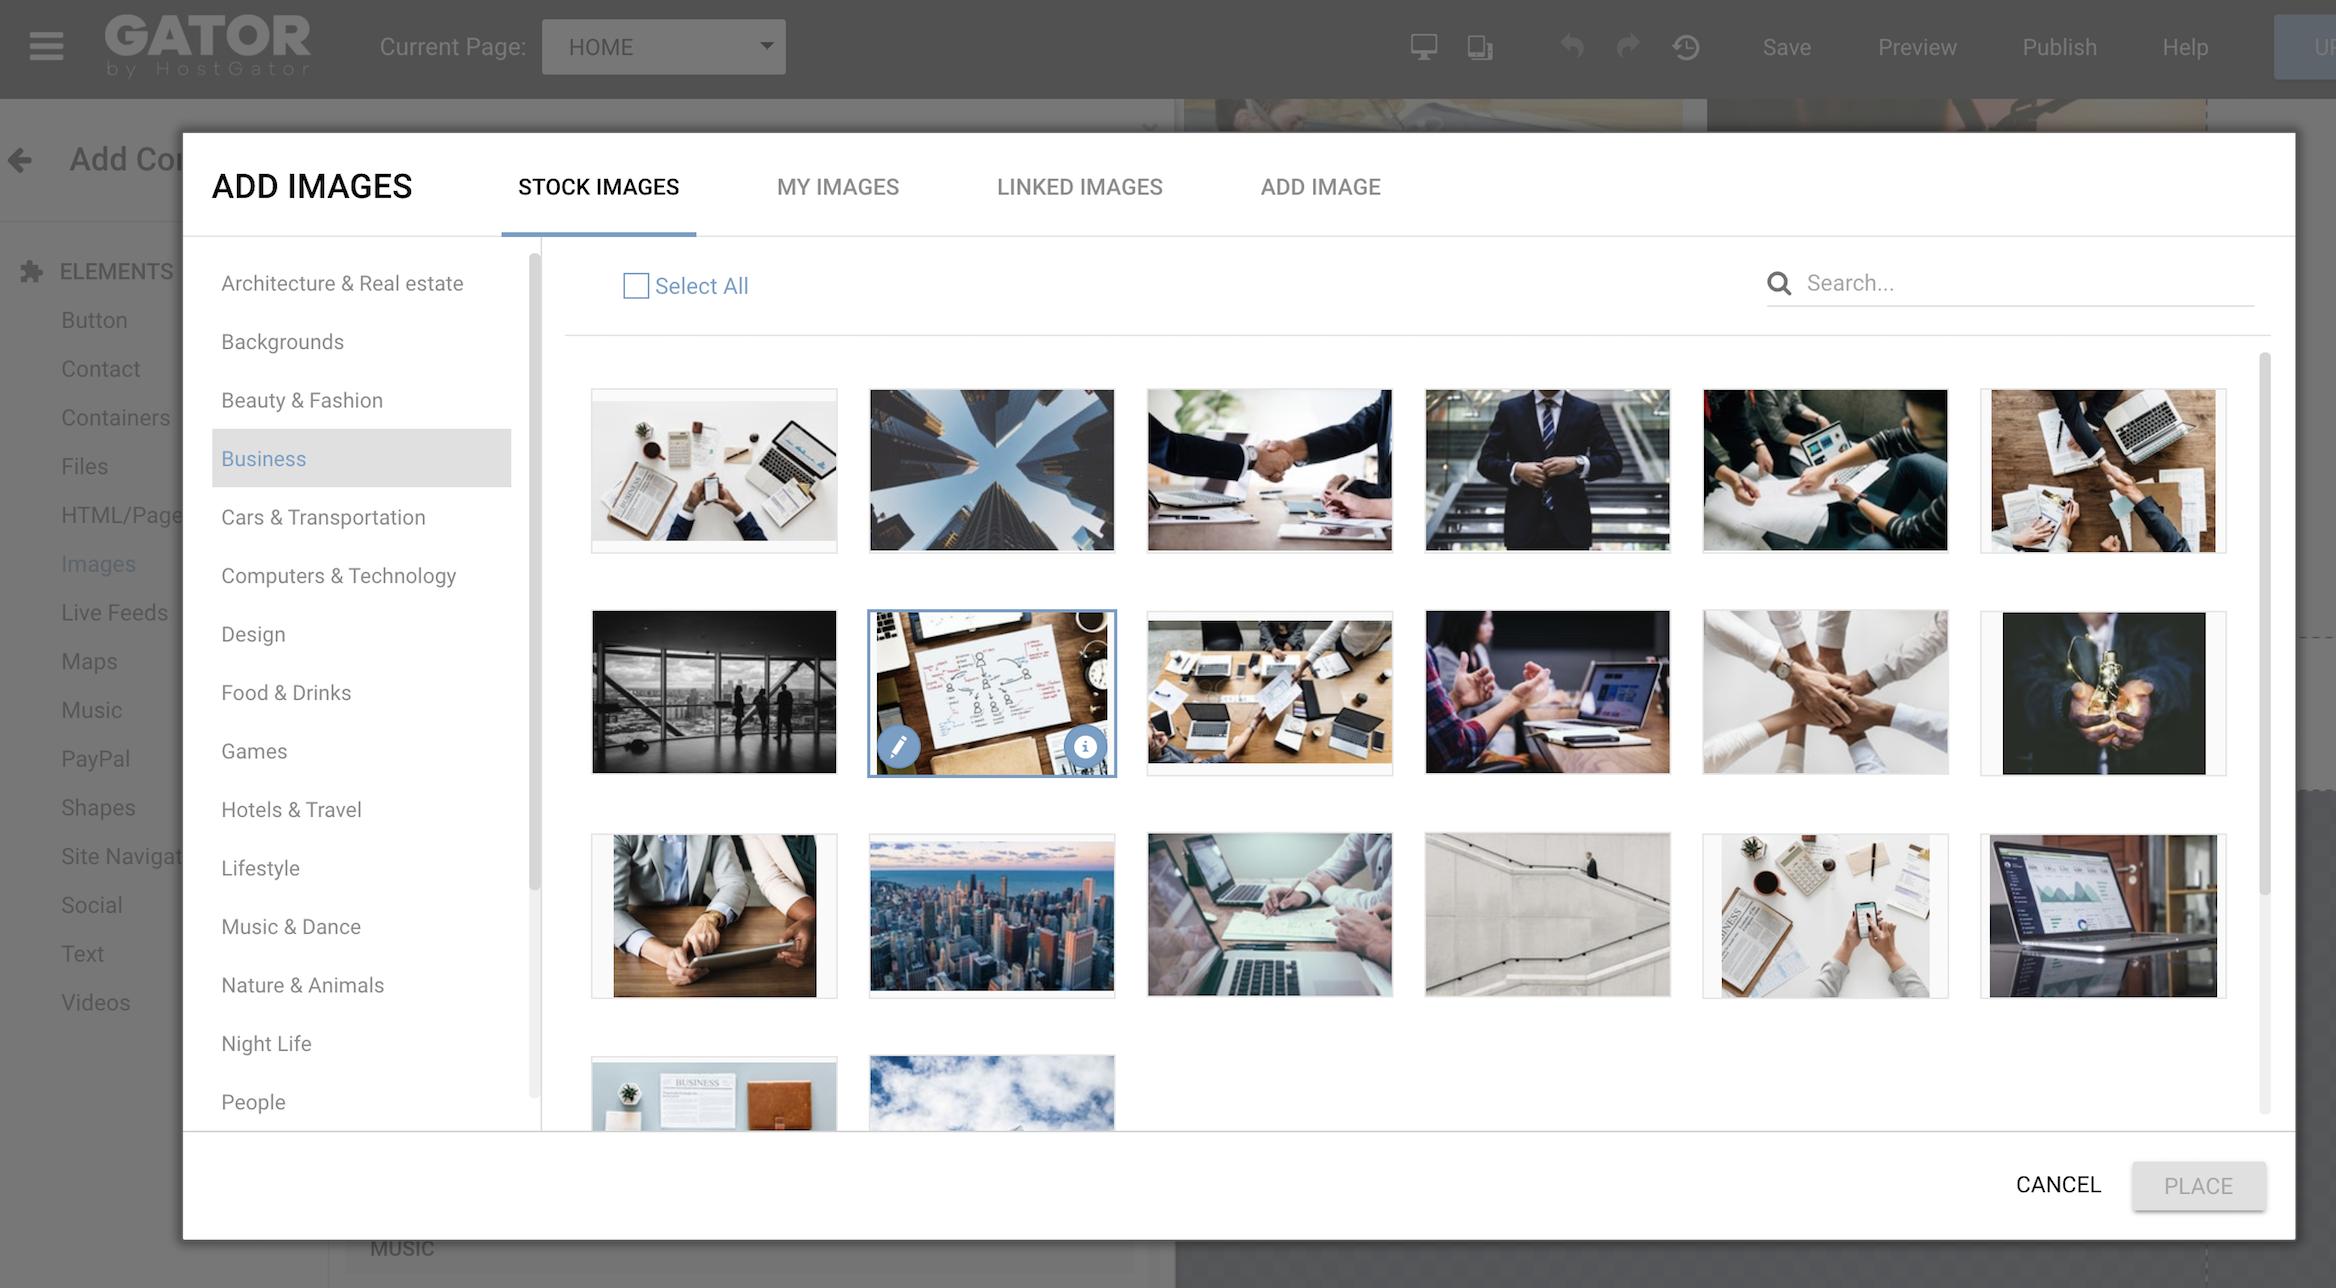 GATOR website builder comes with an integrated stock photo library